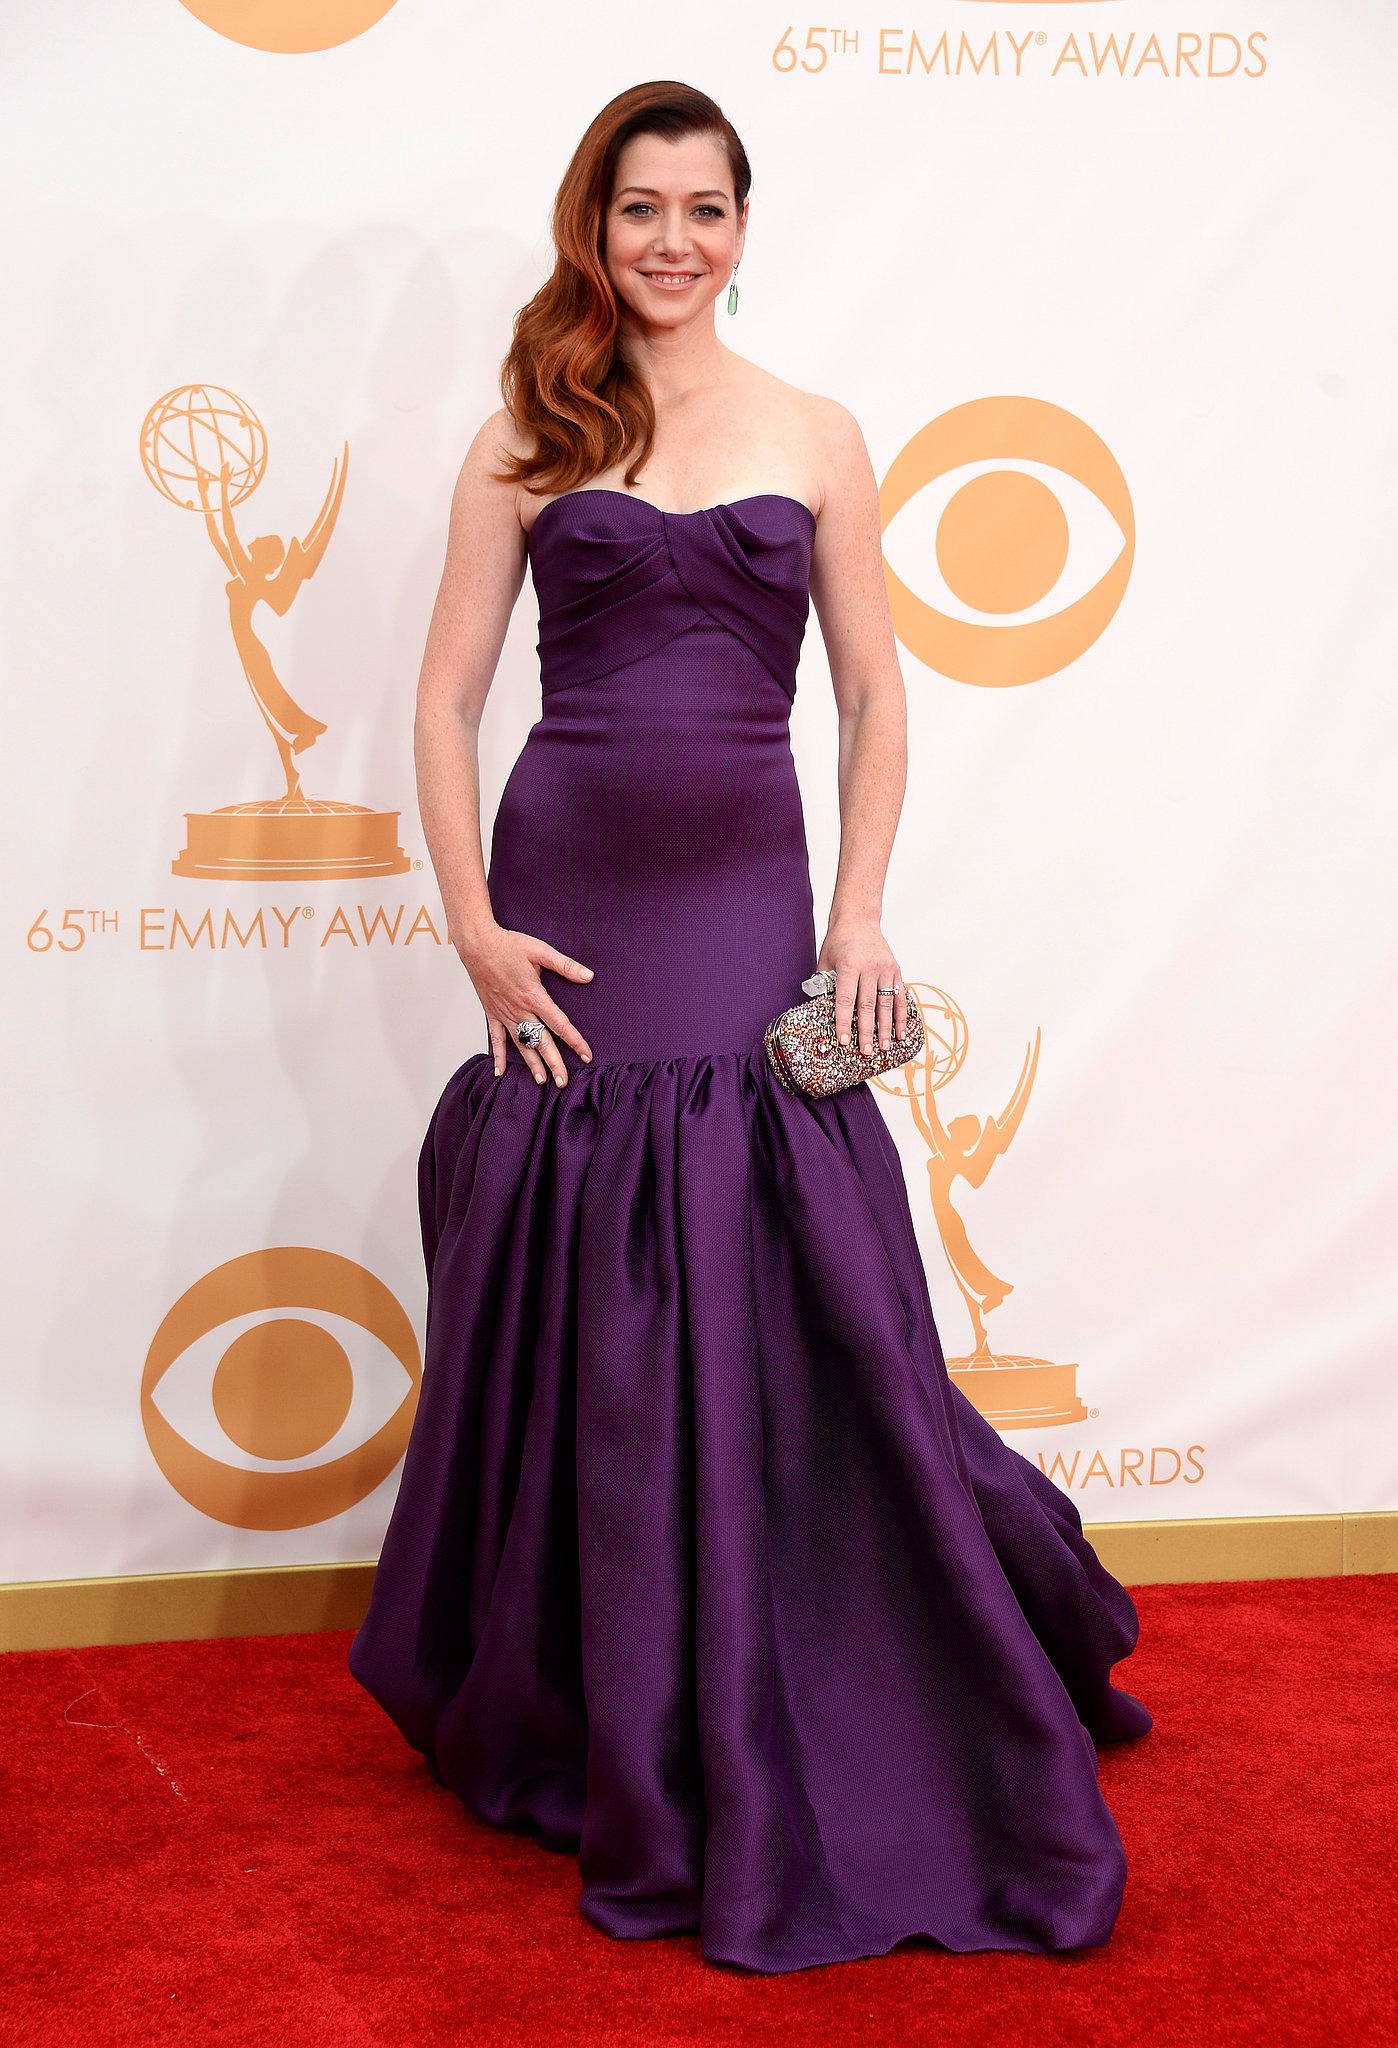 Alyson Hannigan attended the 2013 Emmy Awards.